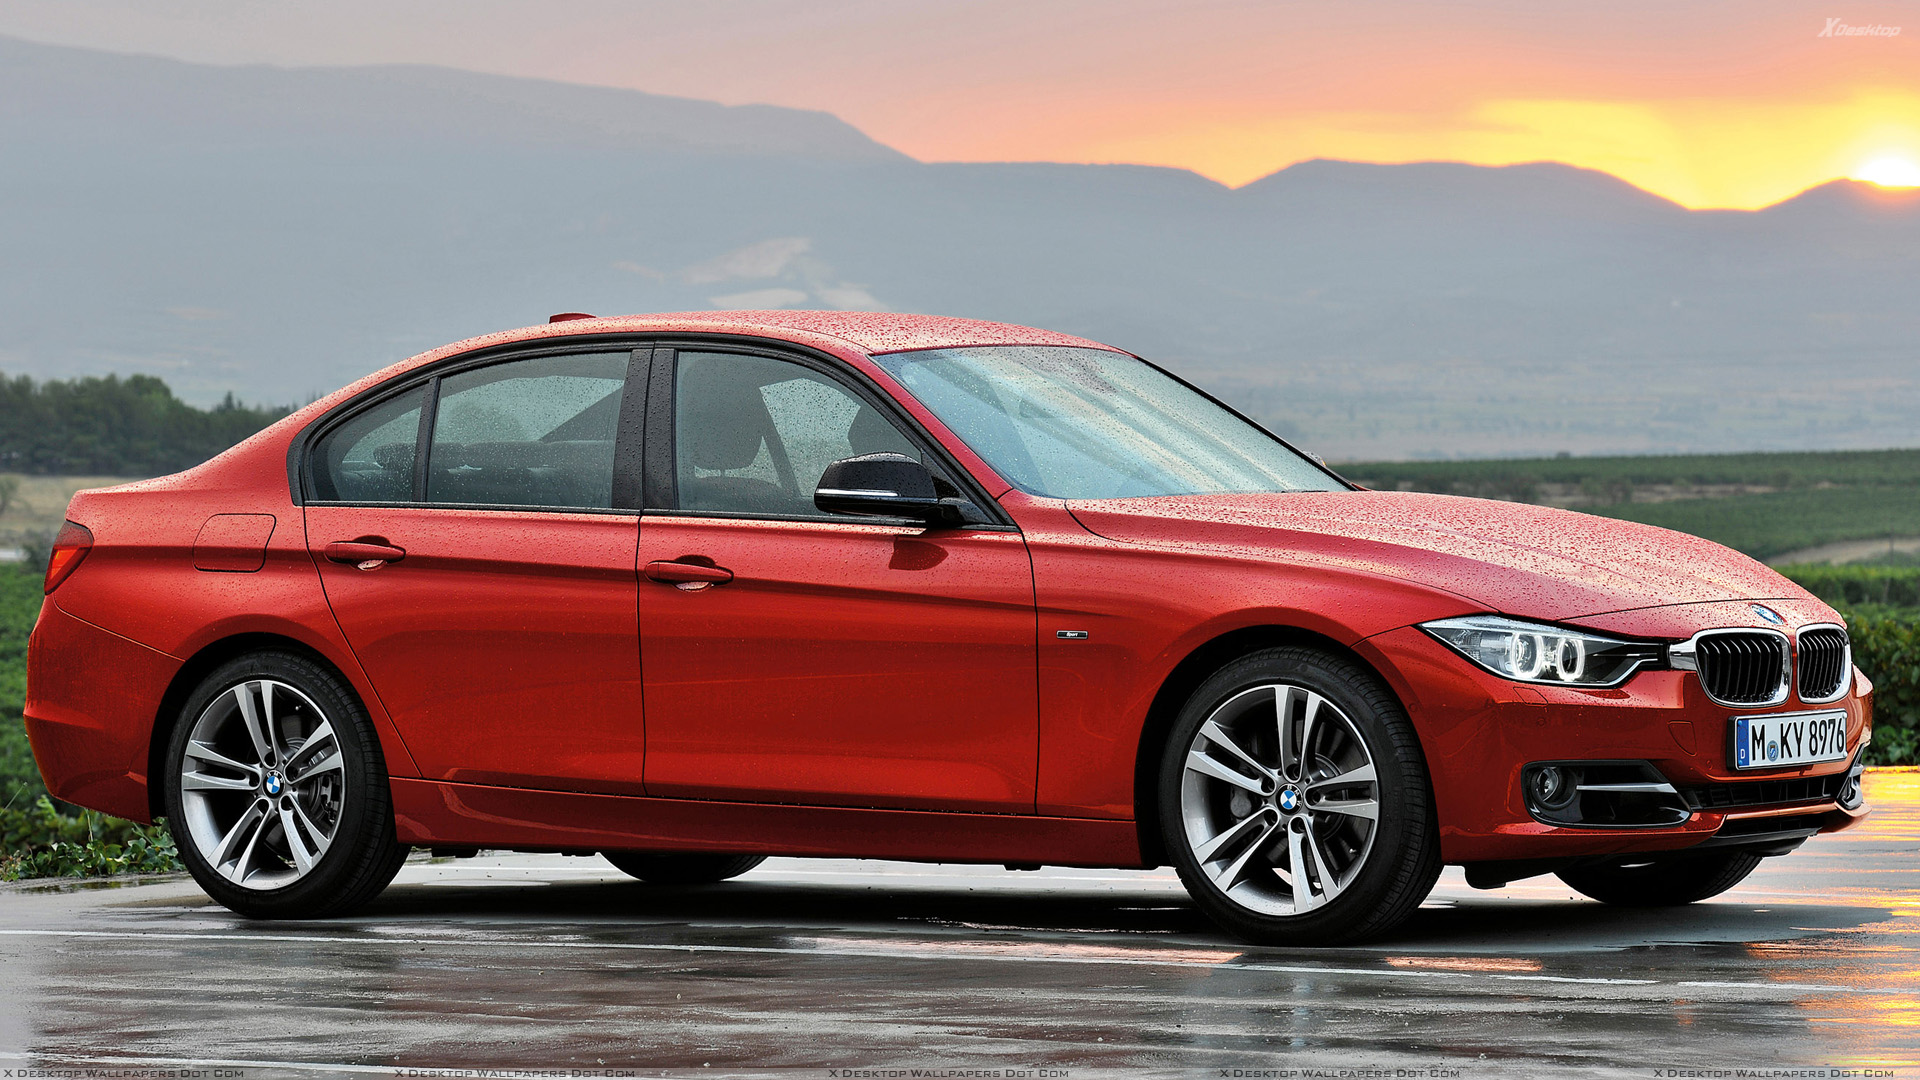 2012 bmw 3 series sedan f30 in red after rain photoshoot. Black Bedroom Furniture Sets. Home Design Ideas